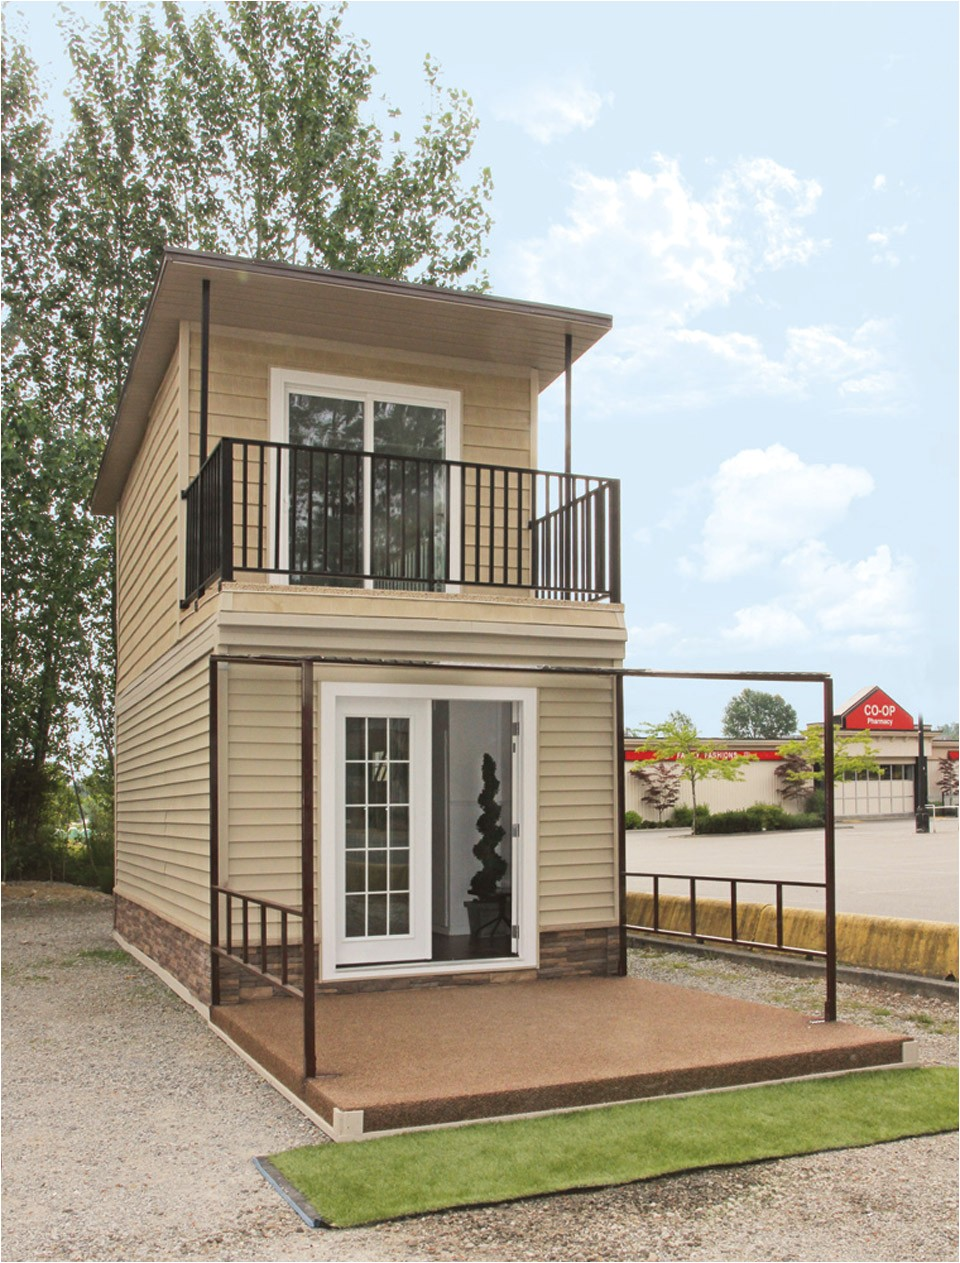 2 Story Tiny Home Plans the Eagle 1 A 350 Sq Ft 2 Story Steel Framed Micro Home